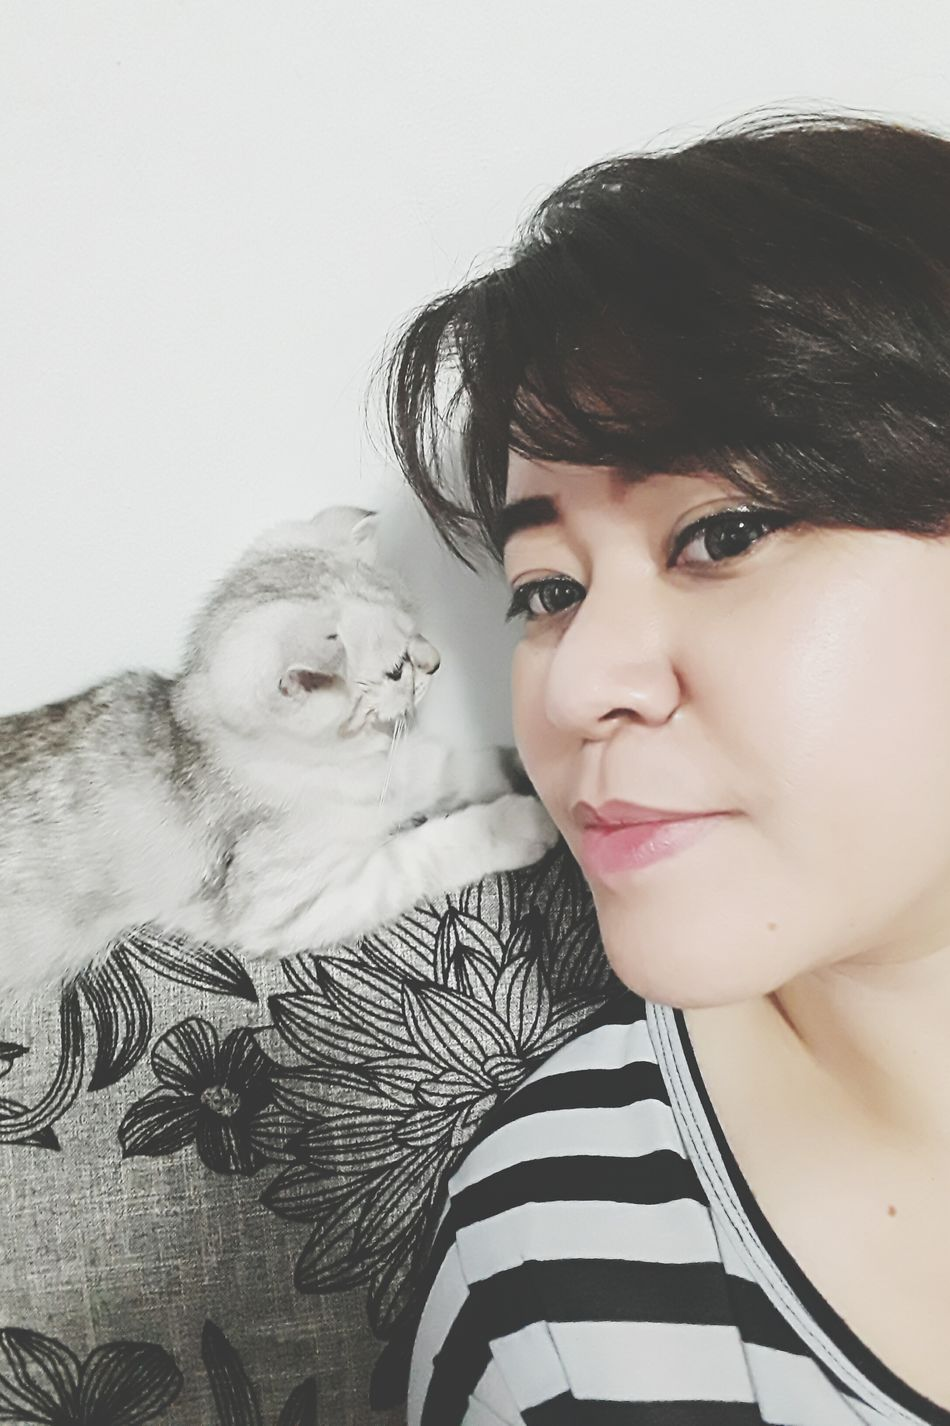 first selfie together~ Cat Lovers Cats Of EyeEm Kittens Of Eyeem Kittens Kitten Cat♡ Selfie Portrait Selfie ✌ Self Portrait Self Portrait Around The World Selfies Its Me Selfportrait Self Potrait Cats Kittenoftheday Selfie✌